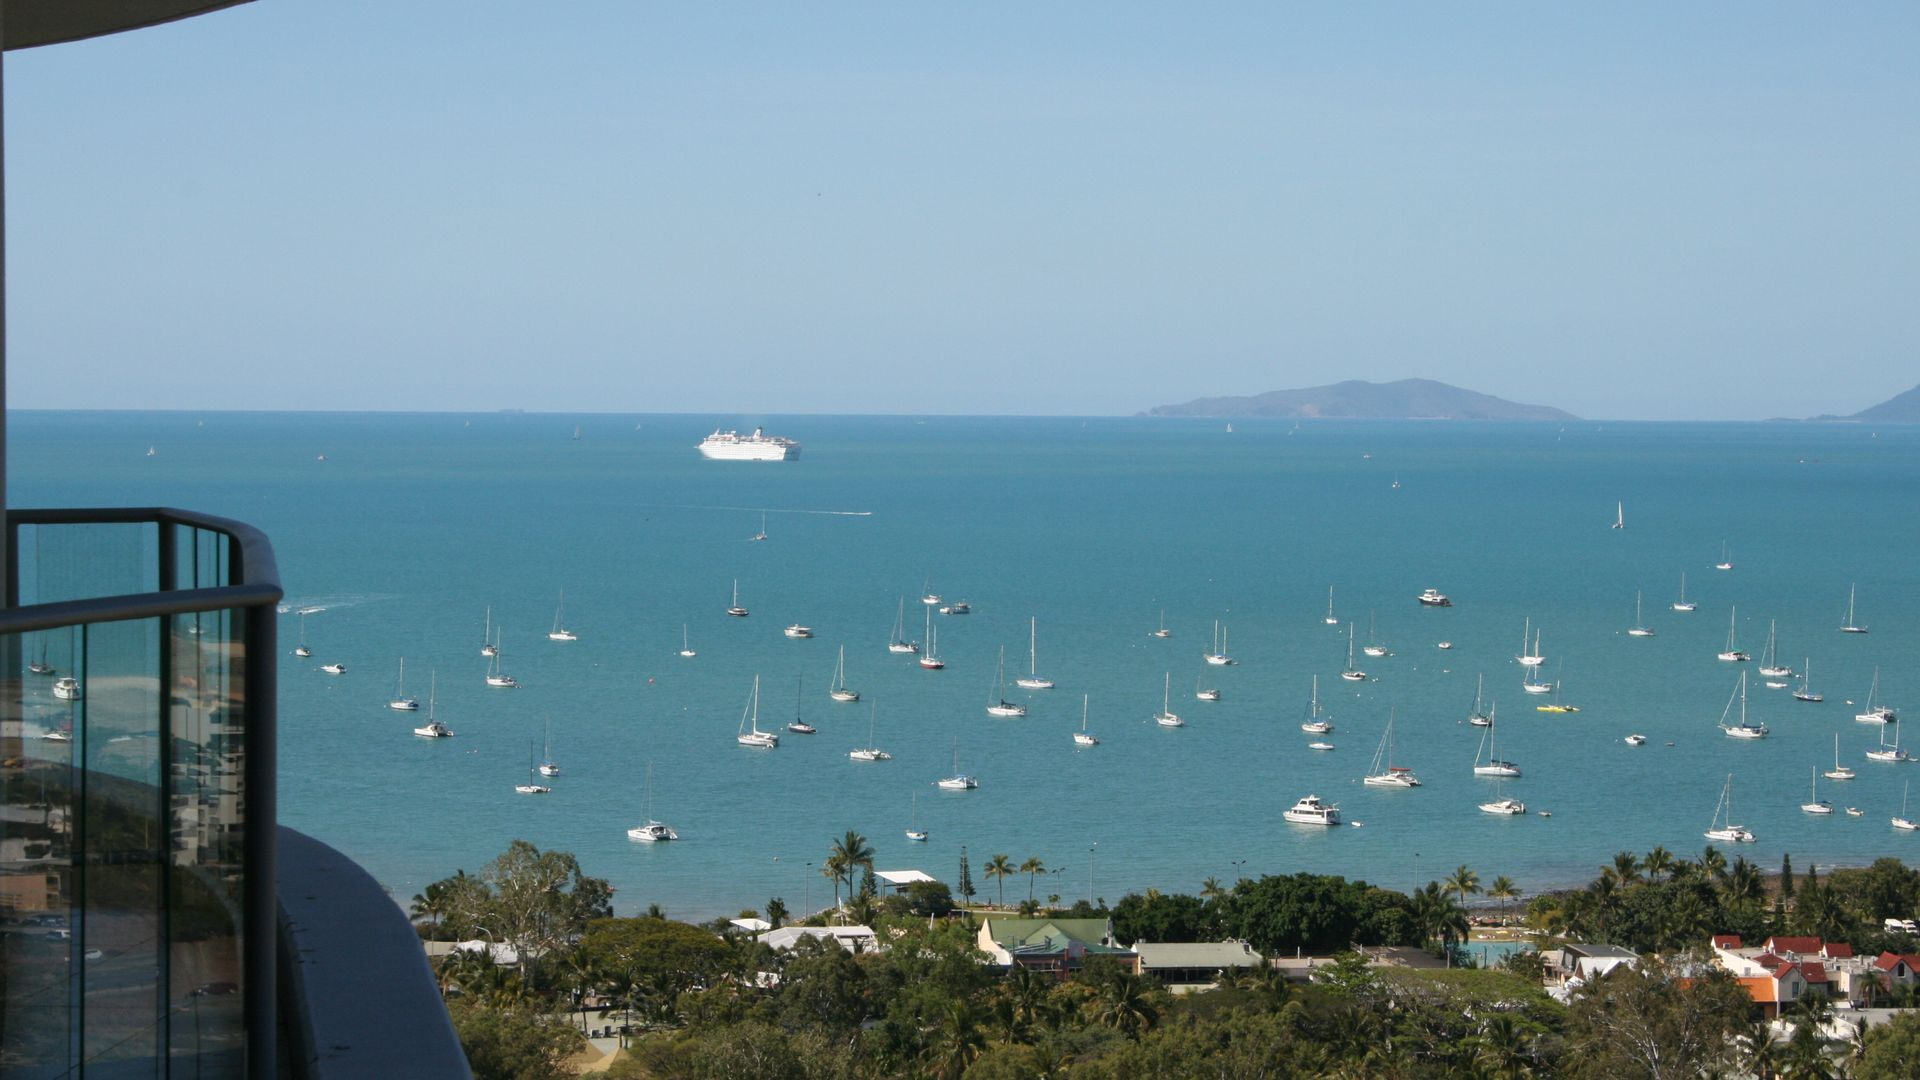 21/18 Seaview Drive, Airlie Beach QLD 4802, Image 10